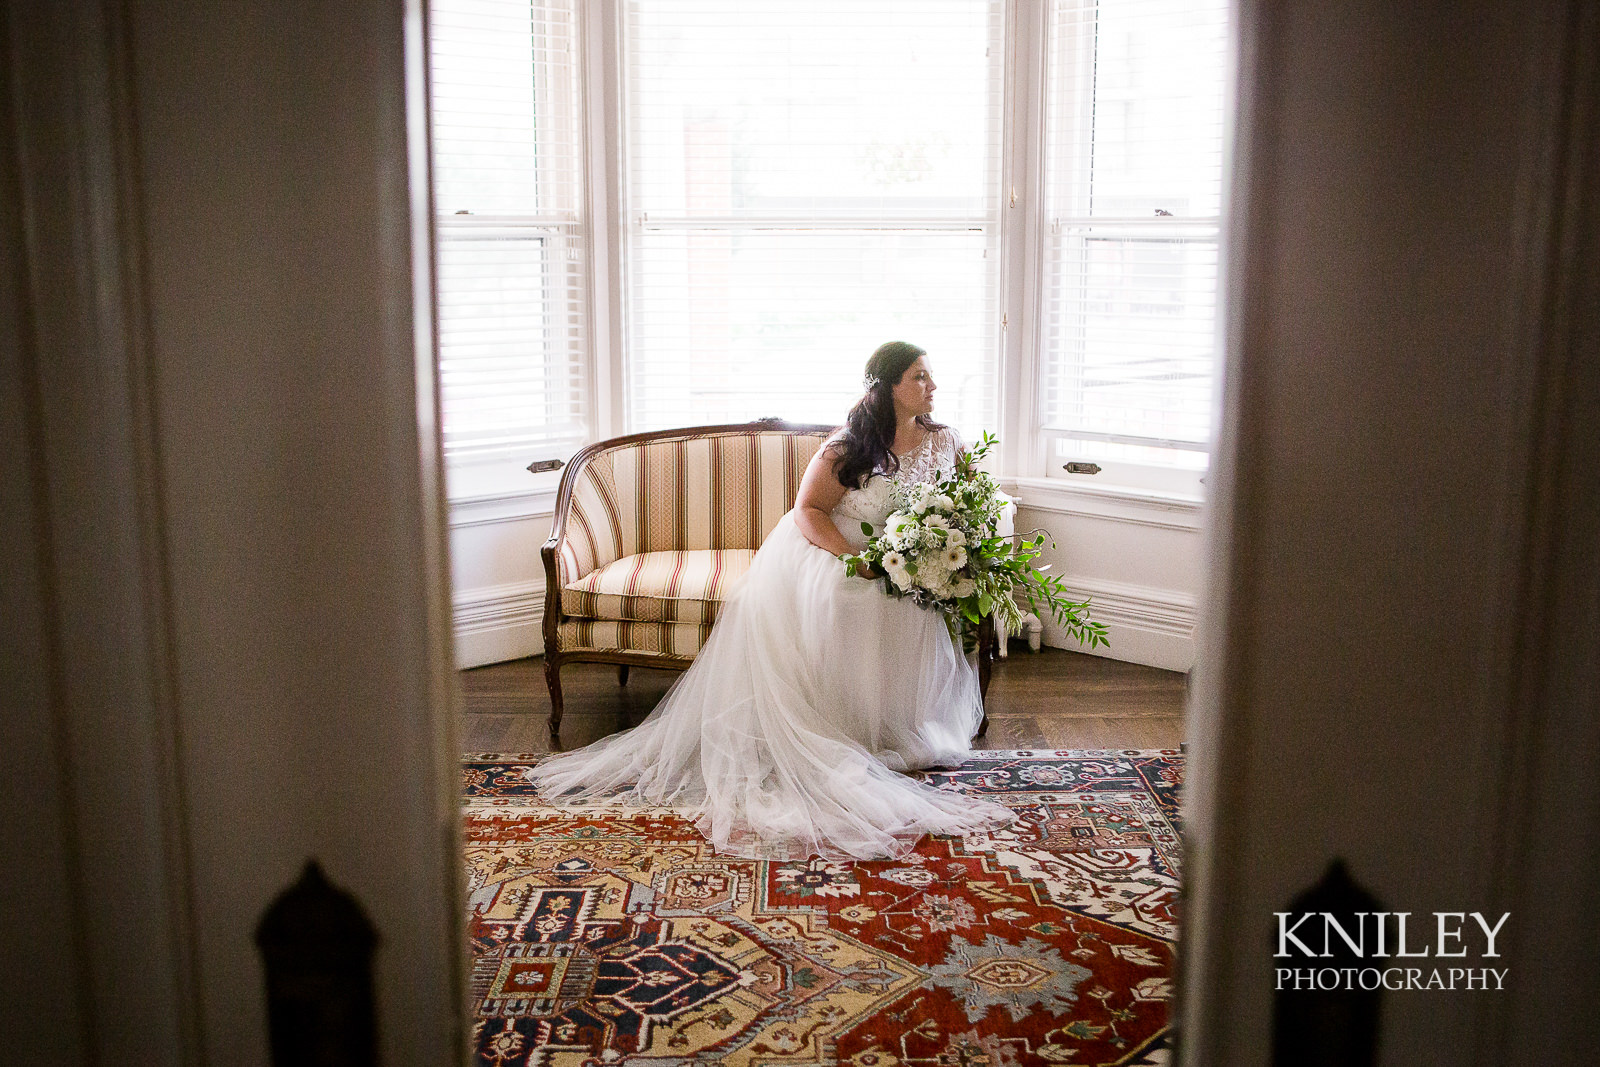 069 - Rochester NY wedding pictures - Century Club - Strathallan Hotel - IMG_8807.jpg